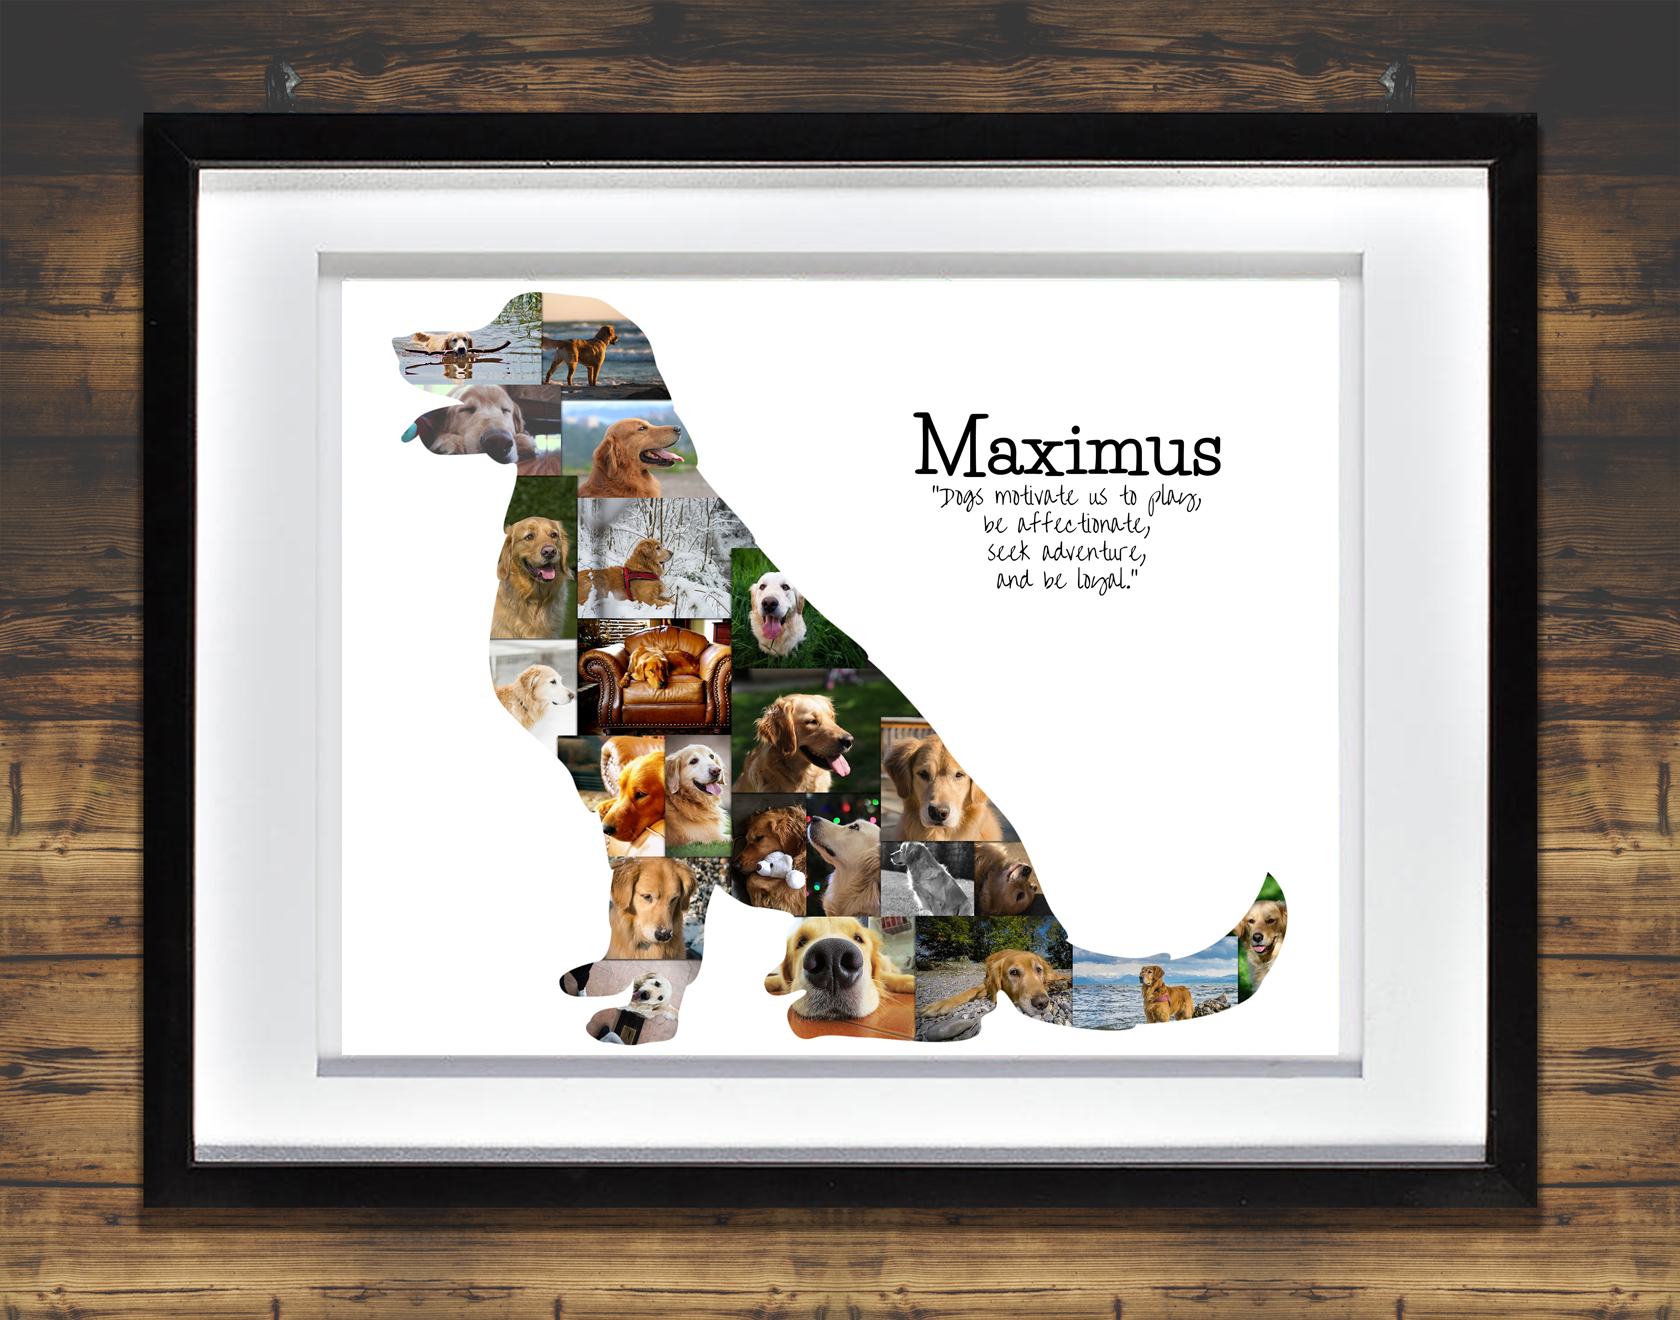 Golden Retriever Photo Collage: Premium, Hand-Crafted Collages ...